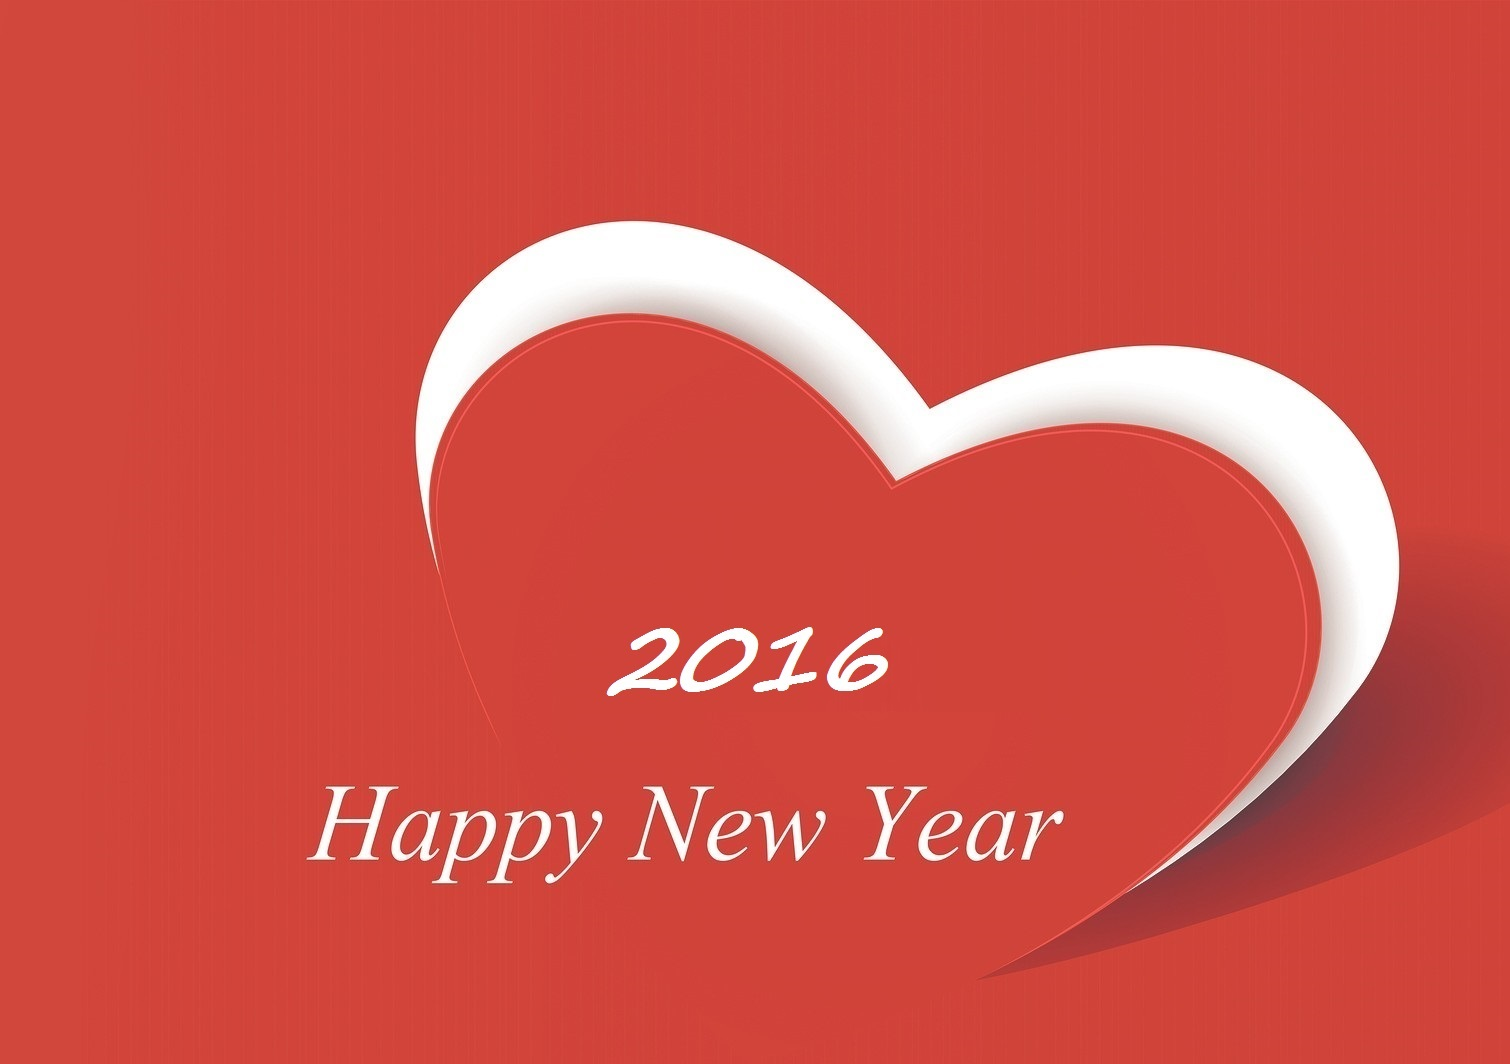 Quotes New Year 2016: Happy New Year 2016 HD Wallpapers Images